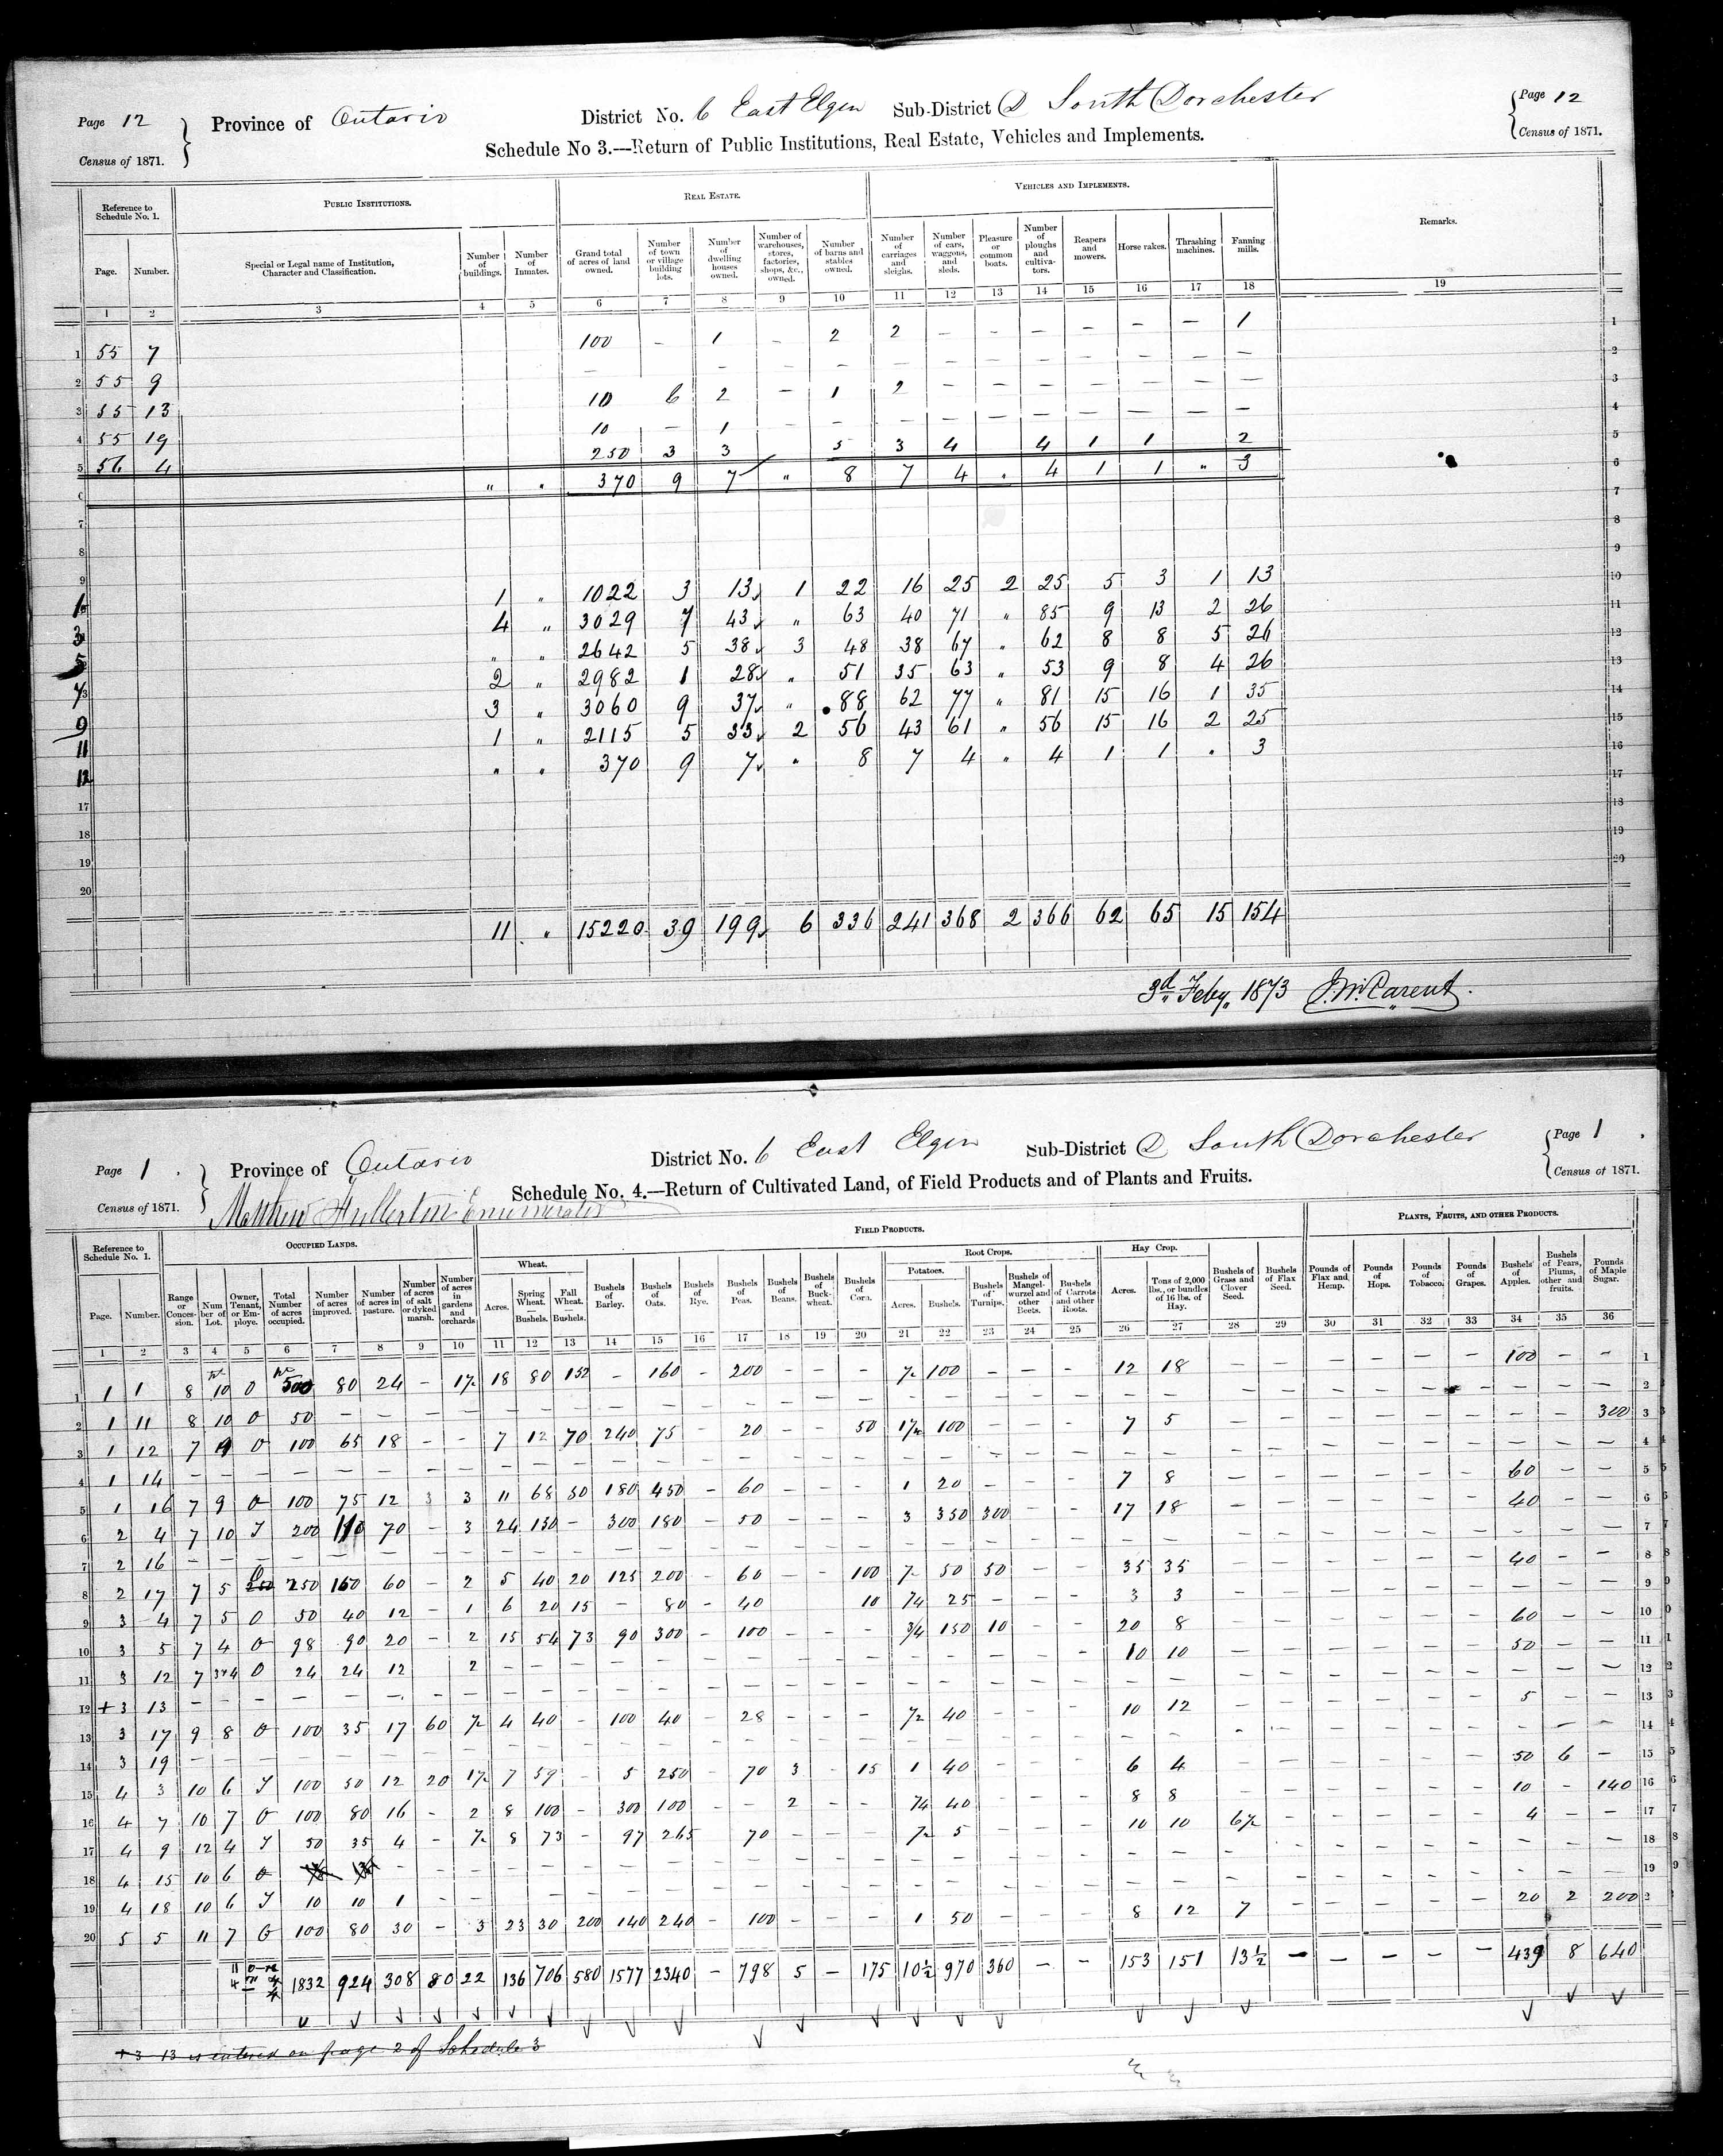 Title: Census of Canada, 1871 - Mikan Number: 142105 - Microform: c-9899